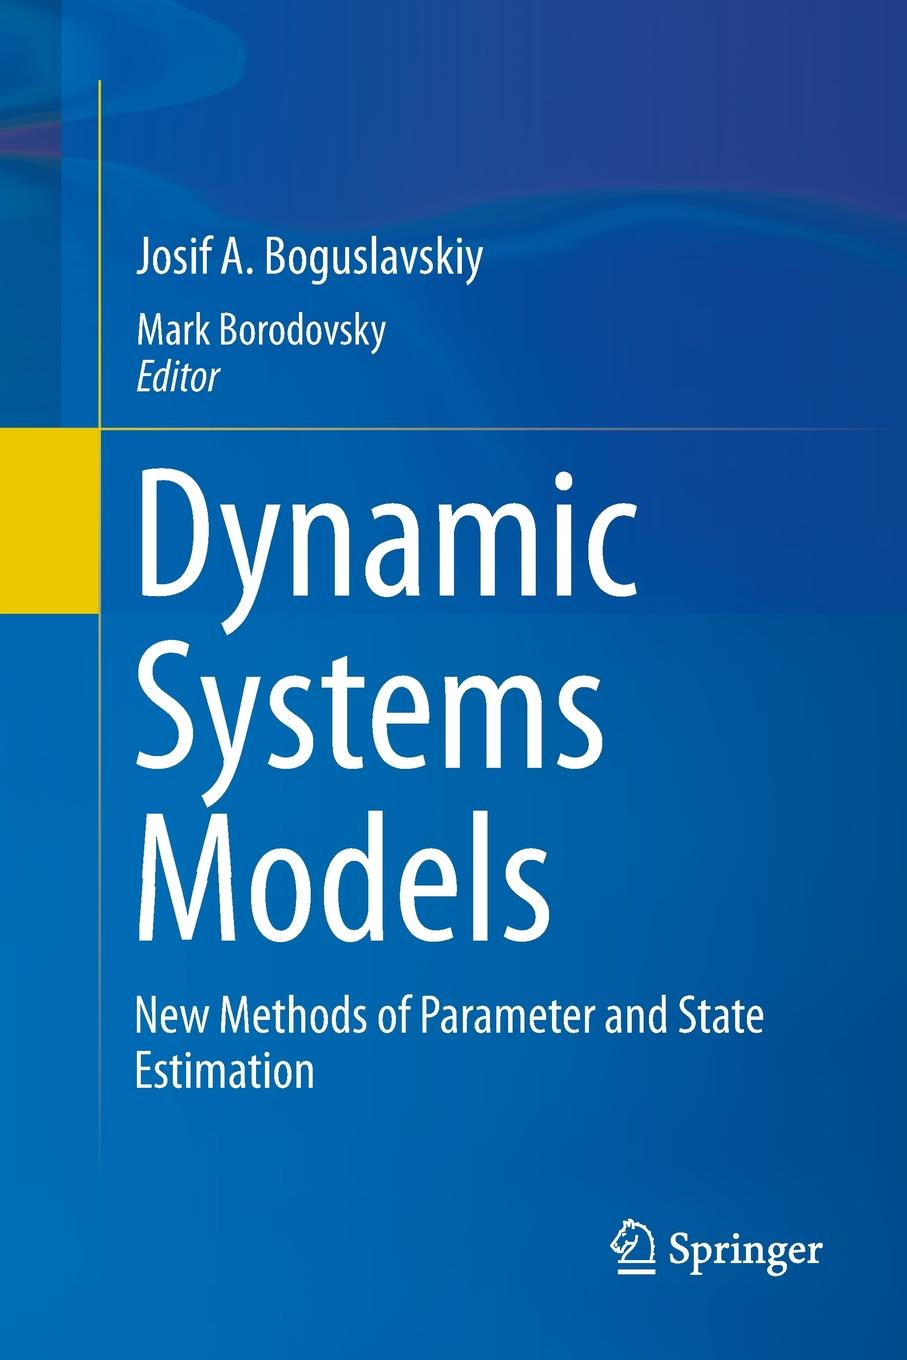 лучшая цена Josif A. Boguslavskiy Dynamic Systems Models. New Methods of Parameter and State Estimation